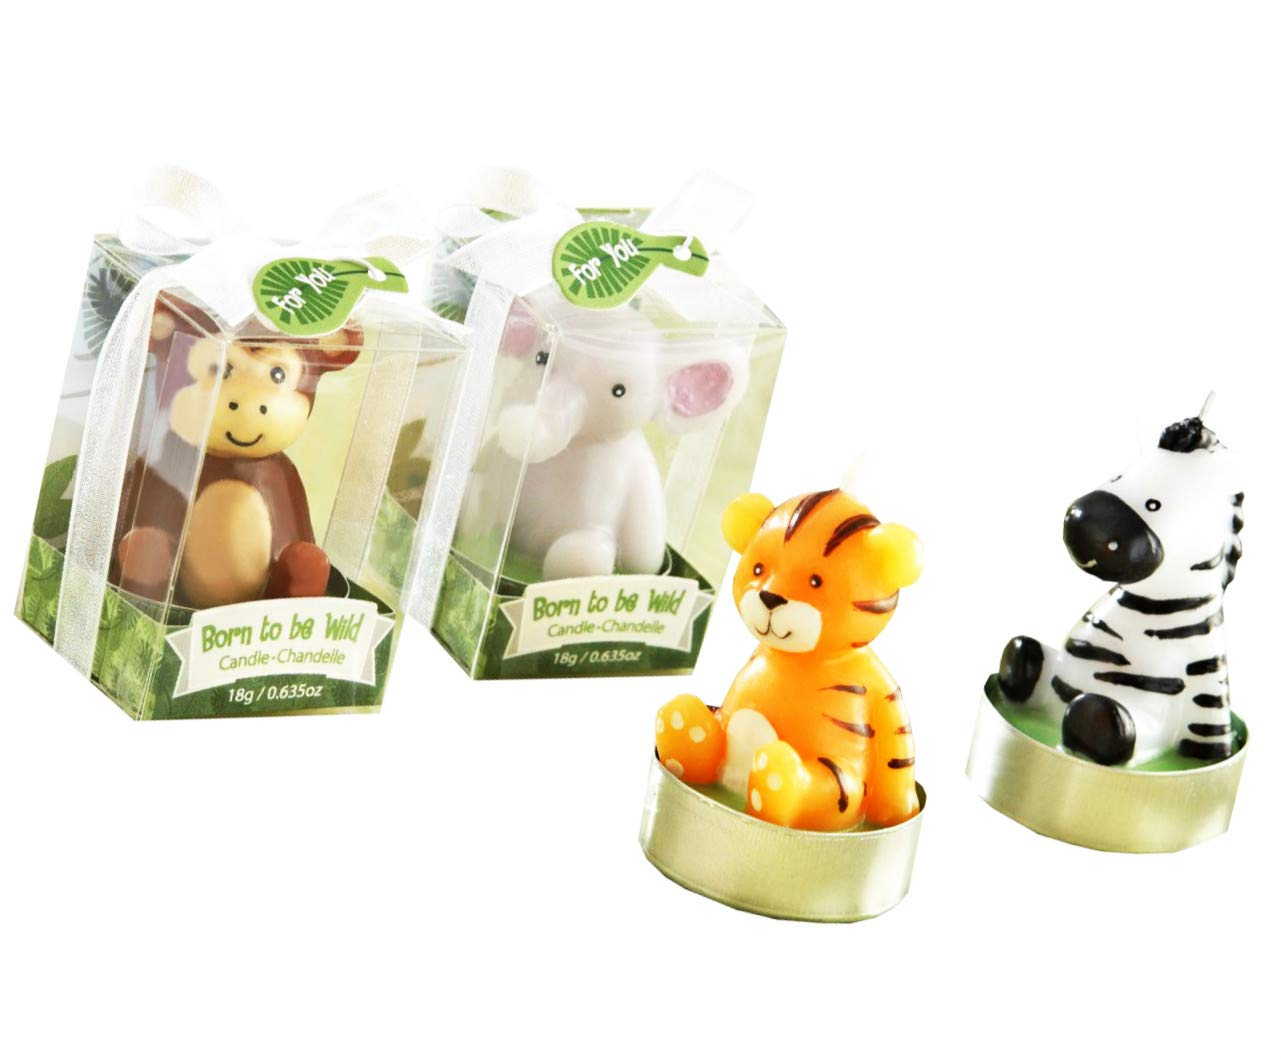 Kate Aspen Baby Shower Animal Candles, Born to be Wild - 6 Sets of 4, Total 24 Pieces